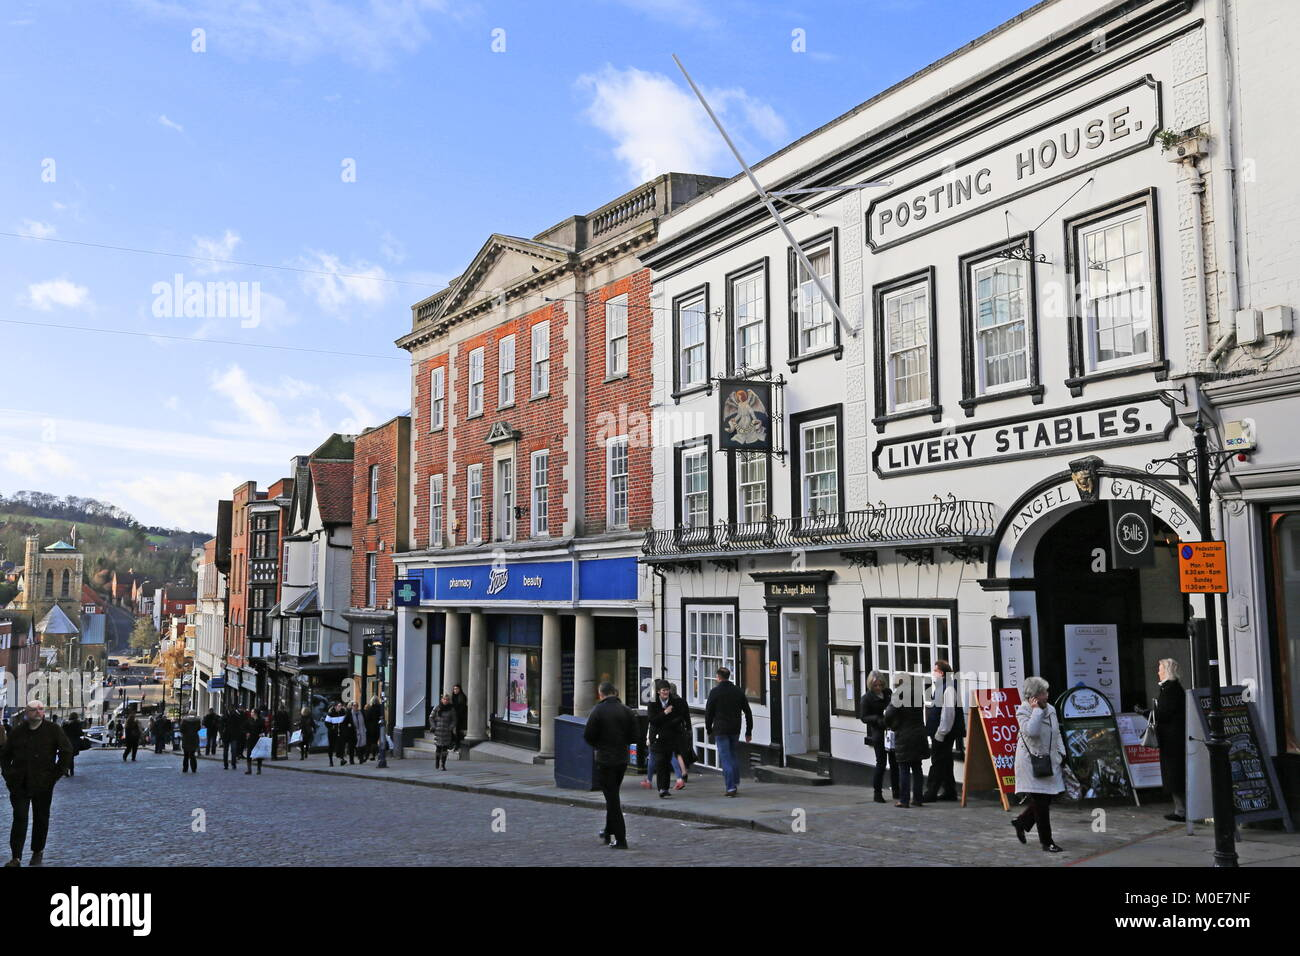 Angel Hotel, High Street, Guildford, Surrey, England, Great Britain, United Kingdom, UK, Europe - Stock Image